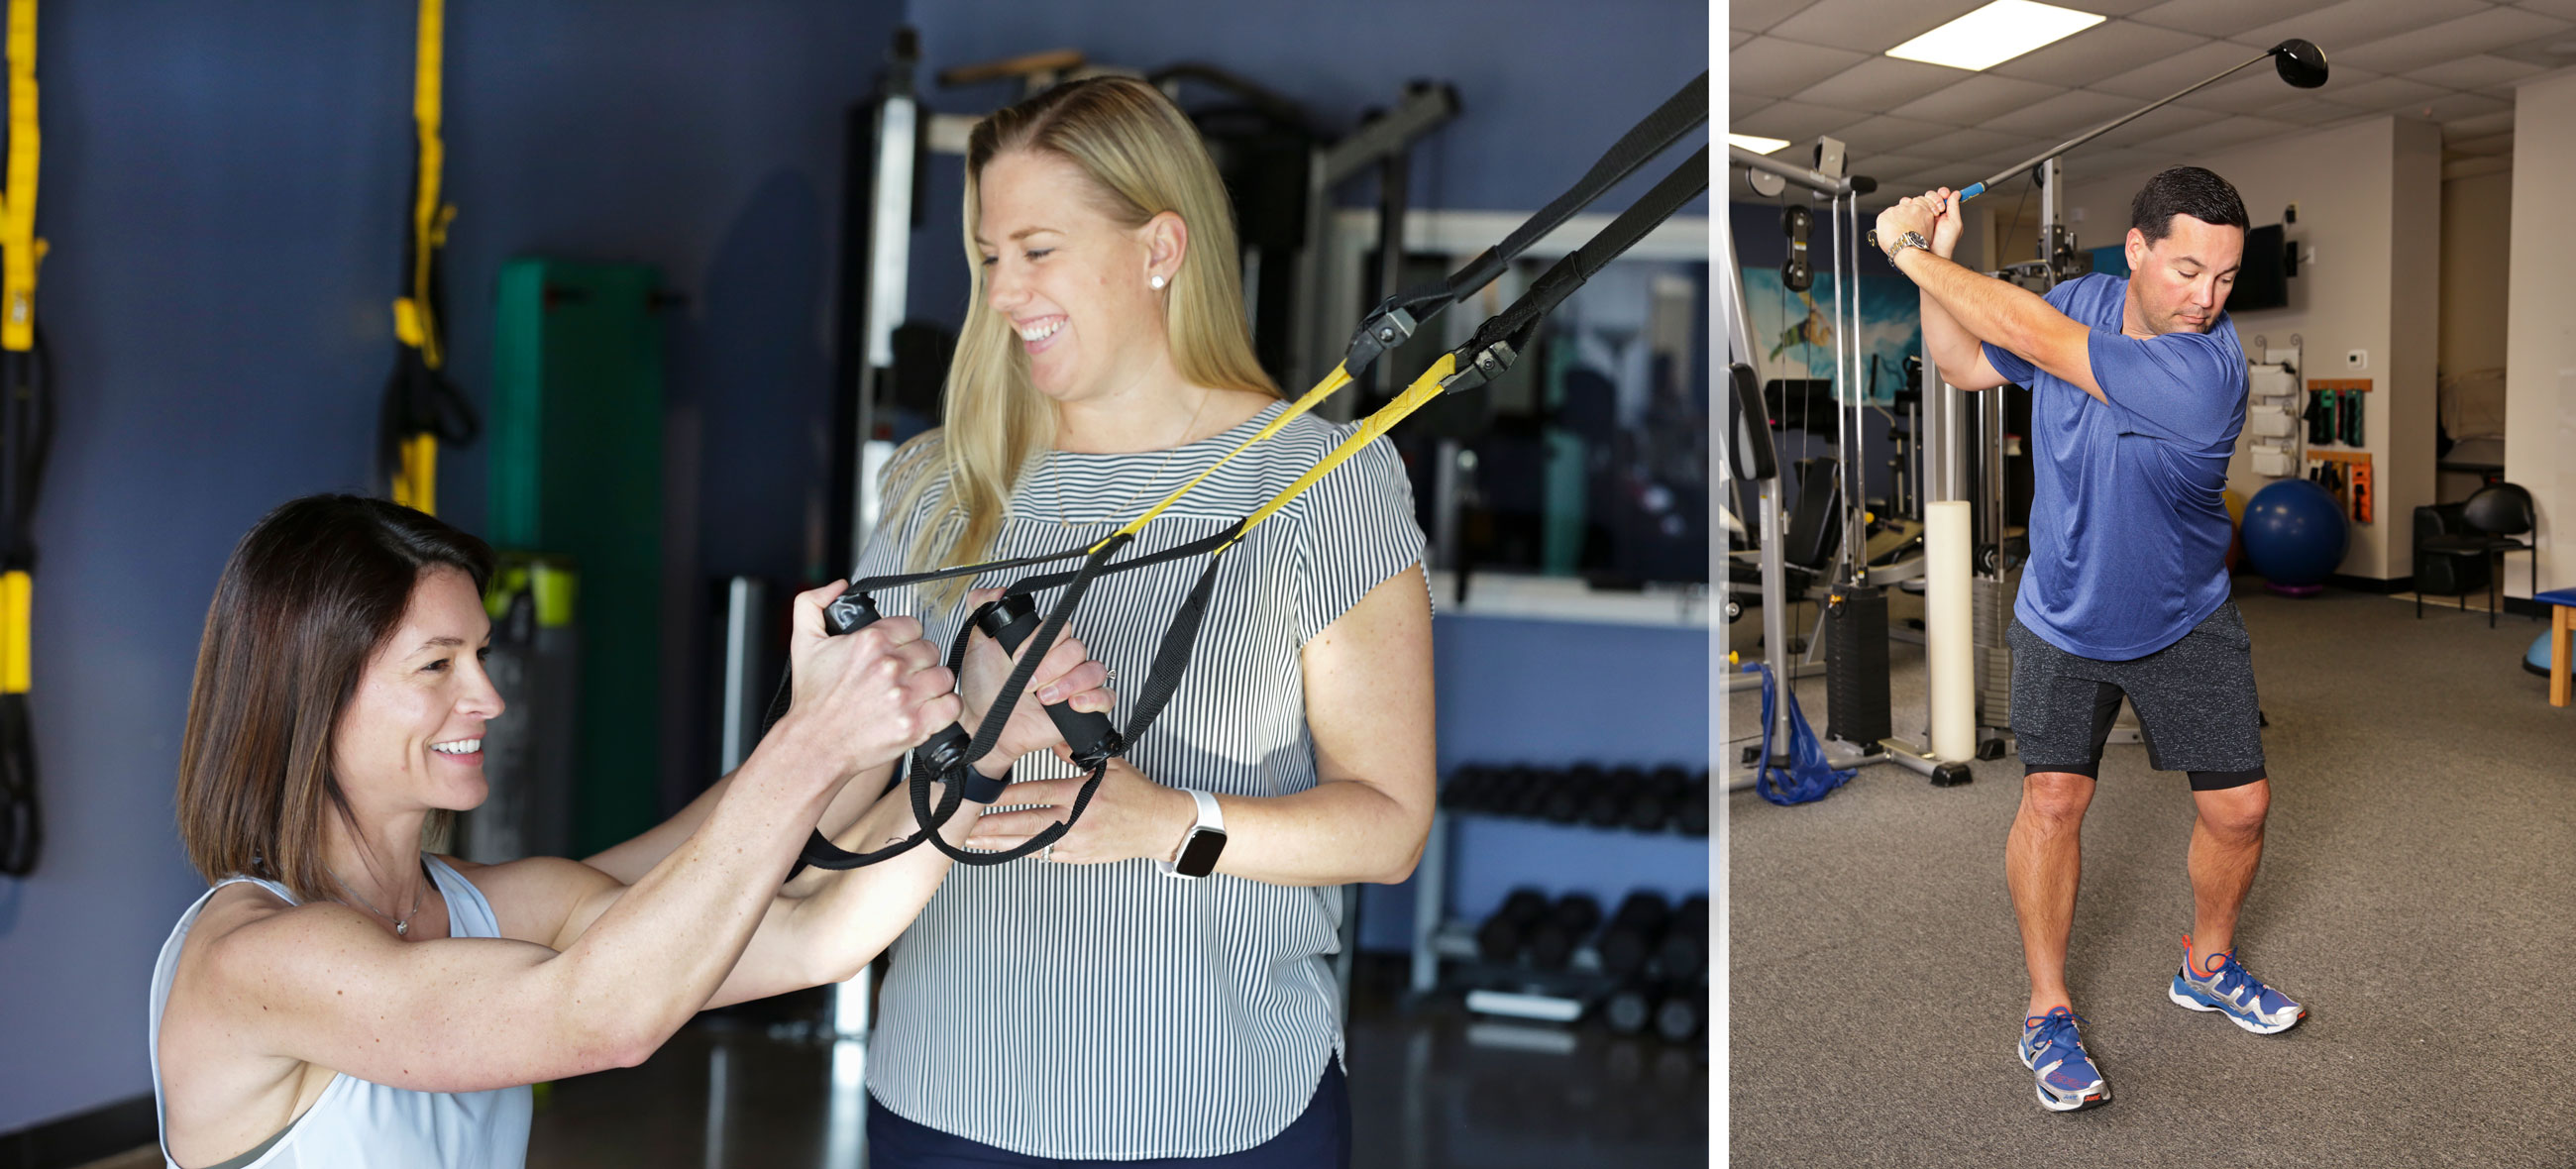 Atlanta Sport and Spine Physical Therapist working to get patients back to doing what they love